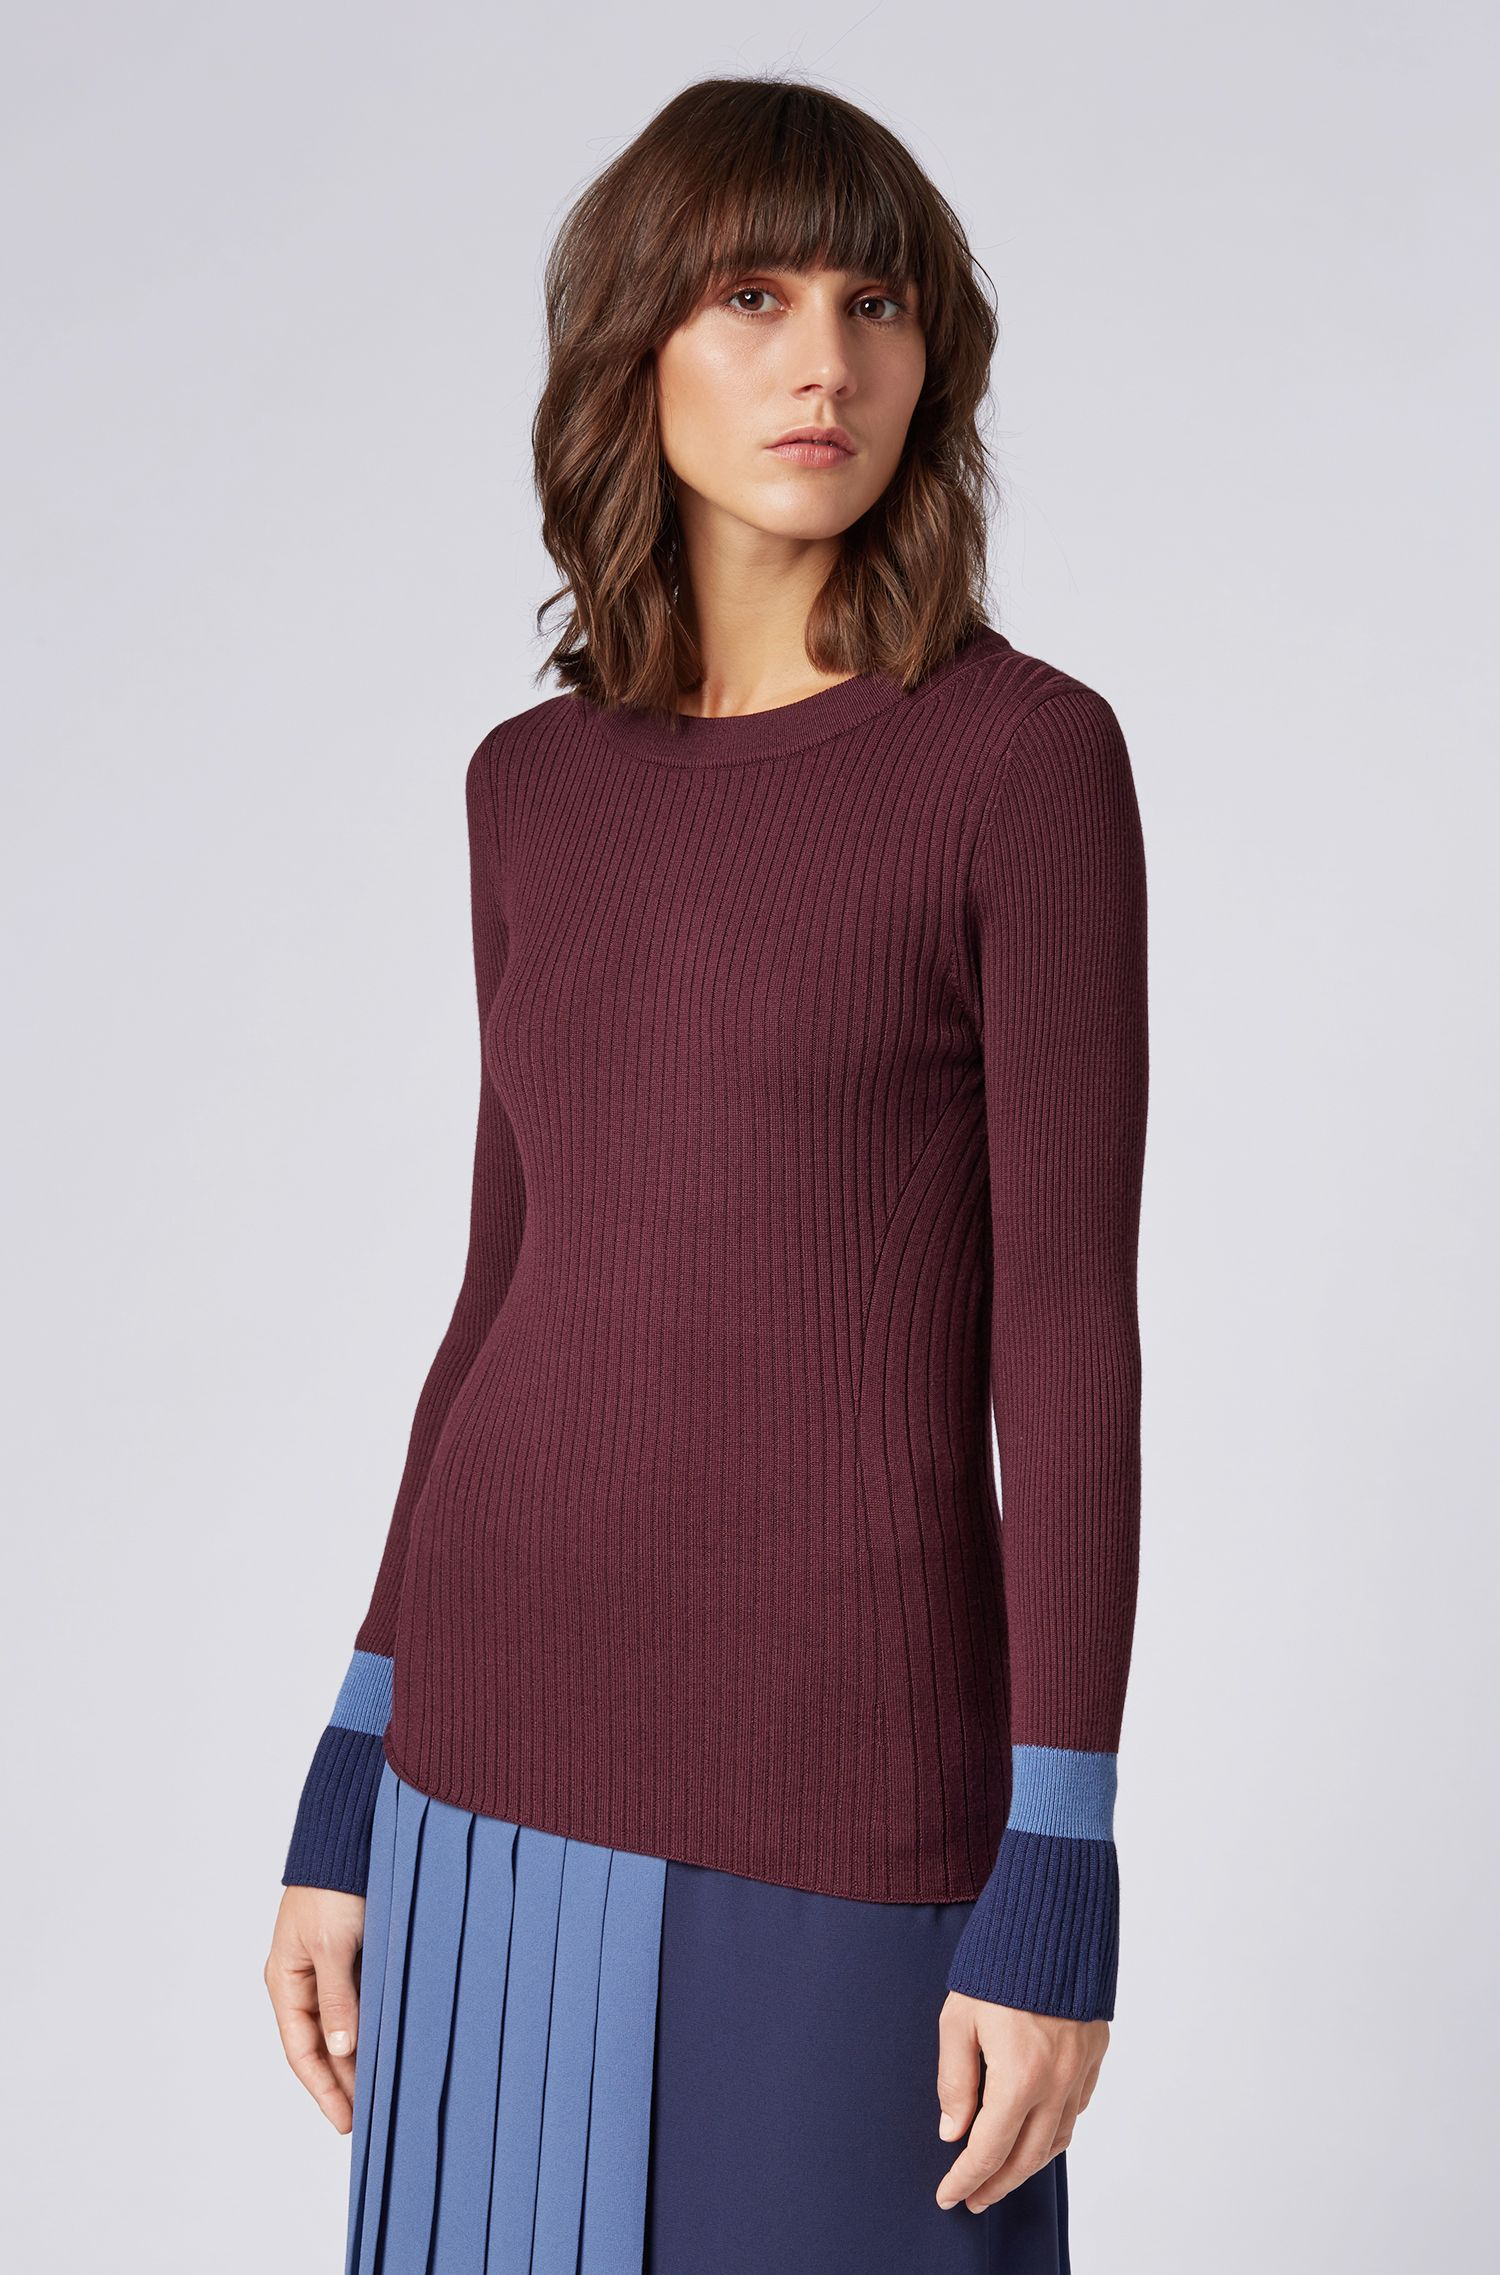 Slim-fit sweater in virgin wool with colourblock cuffs, Patterned